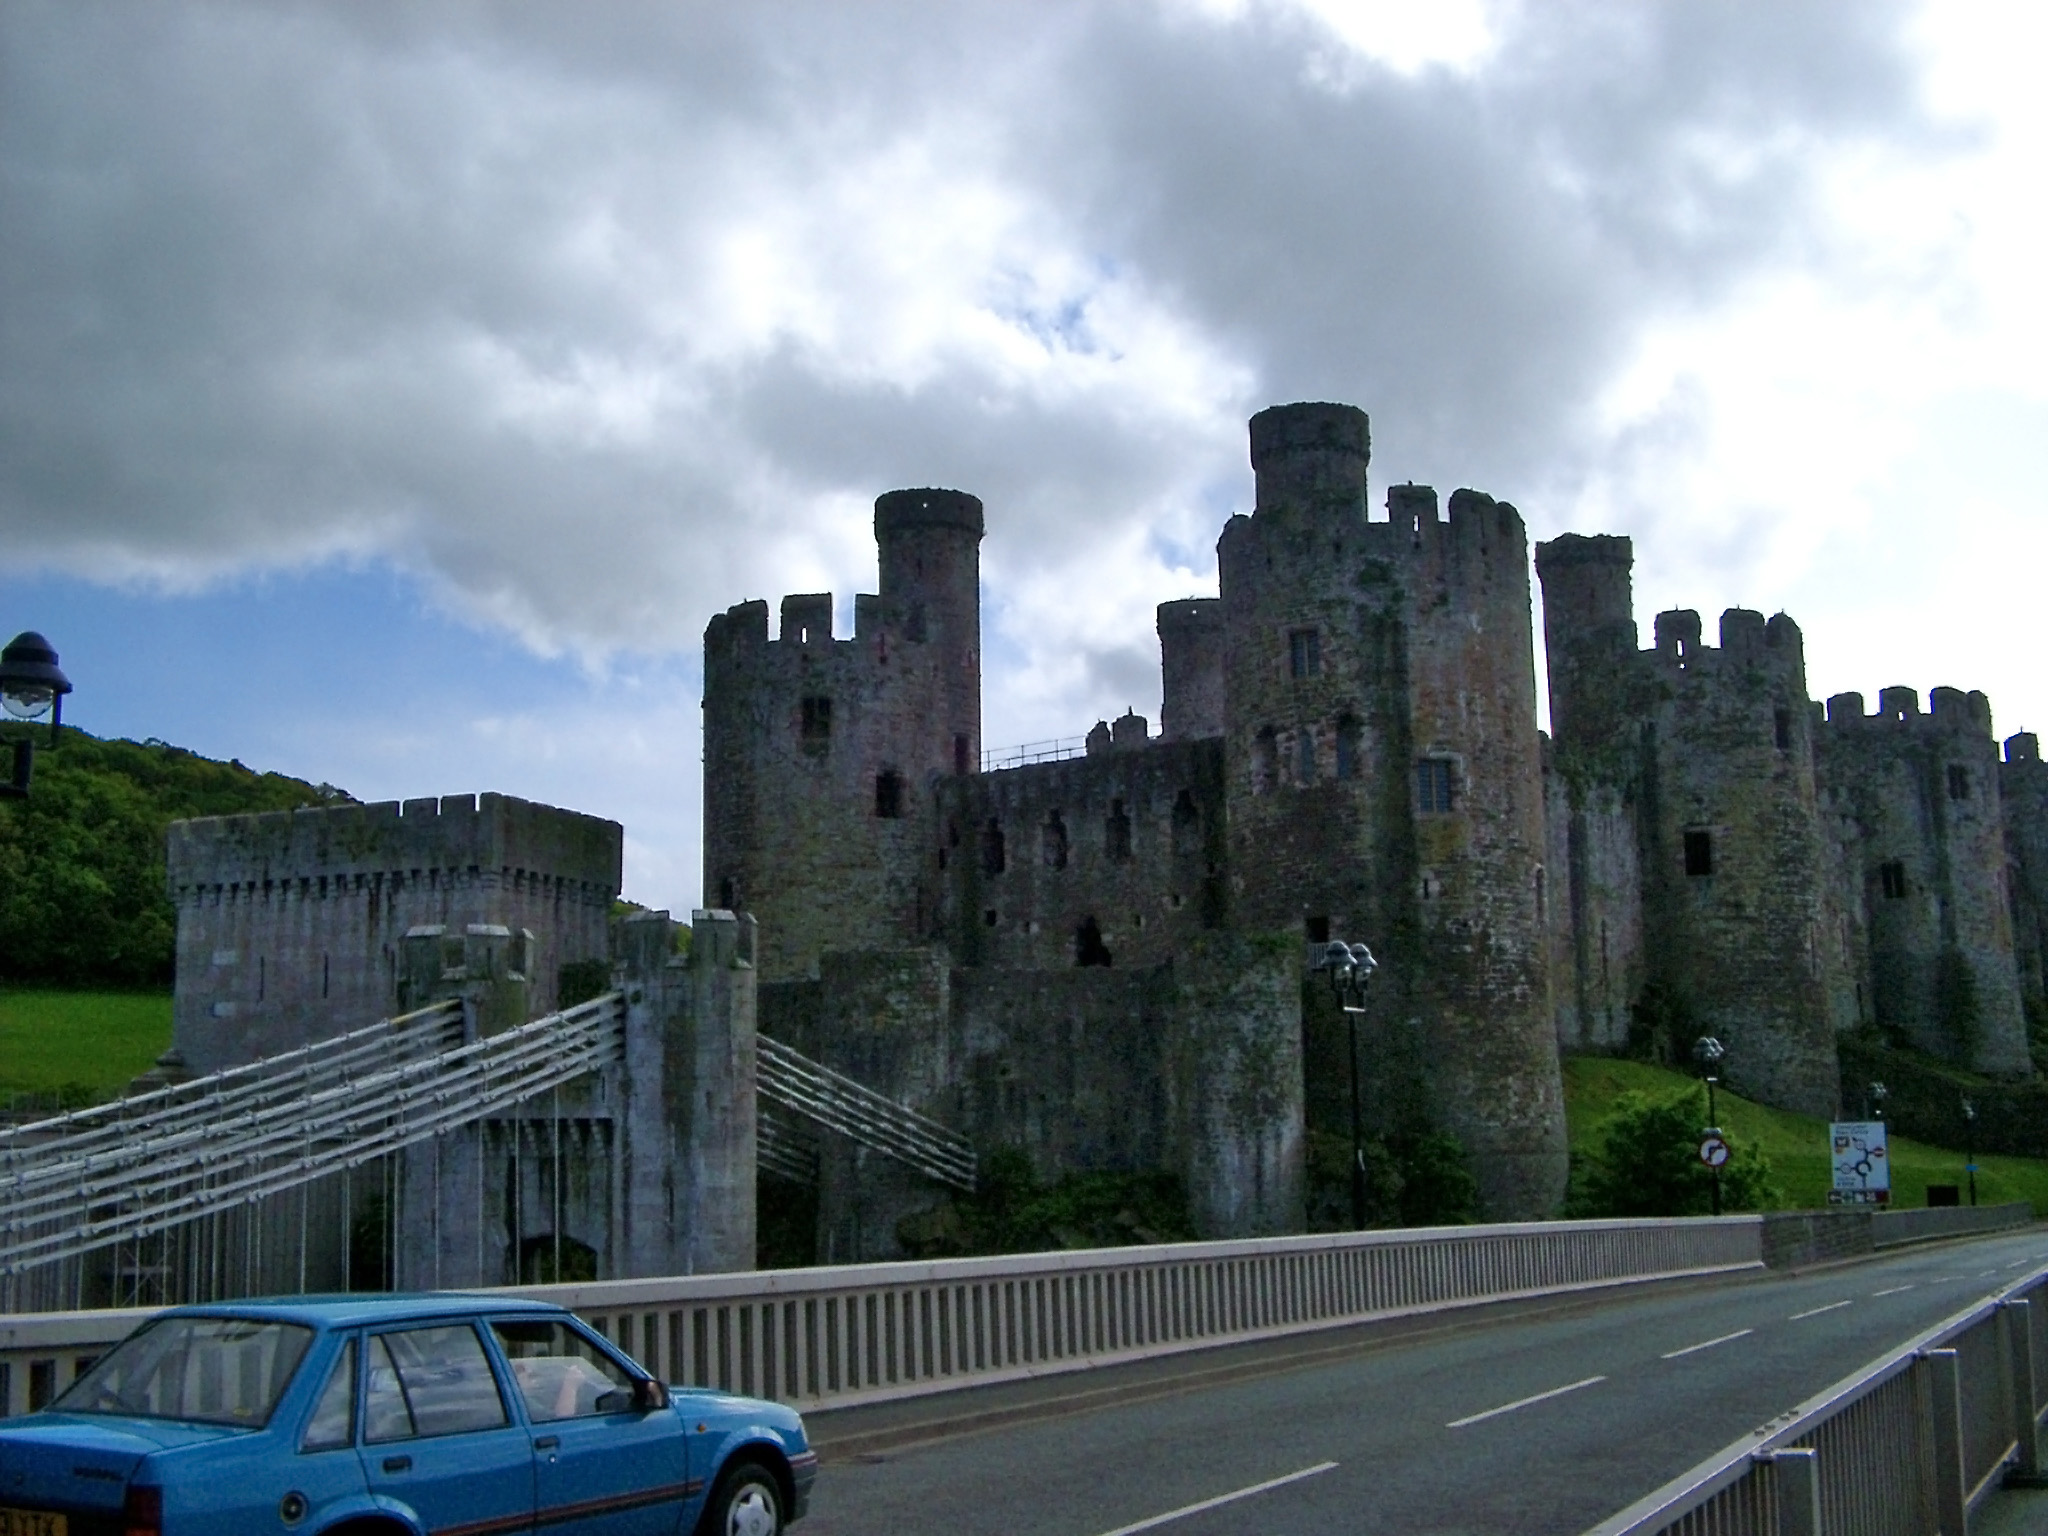 Blue Car Passing the Bridge Near the Historic Conway Castle, Located in Wales.